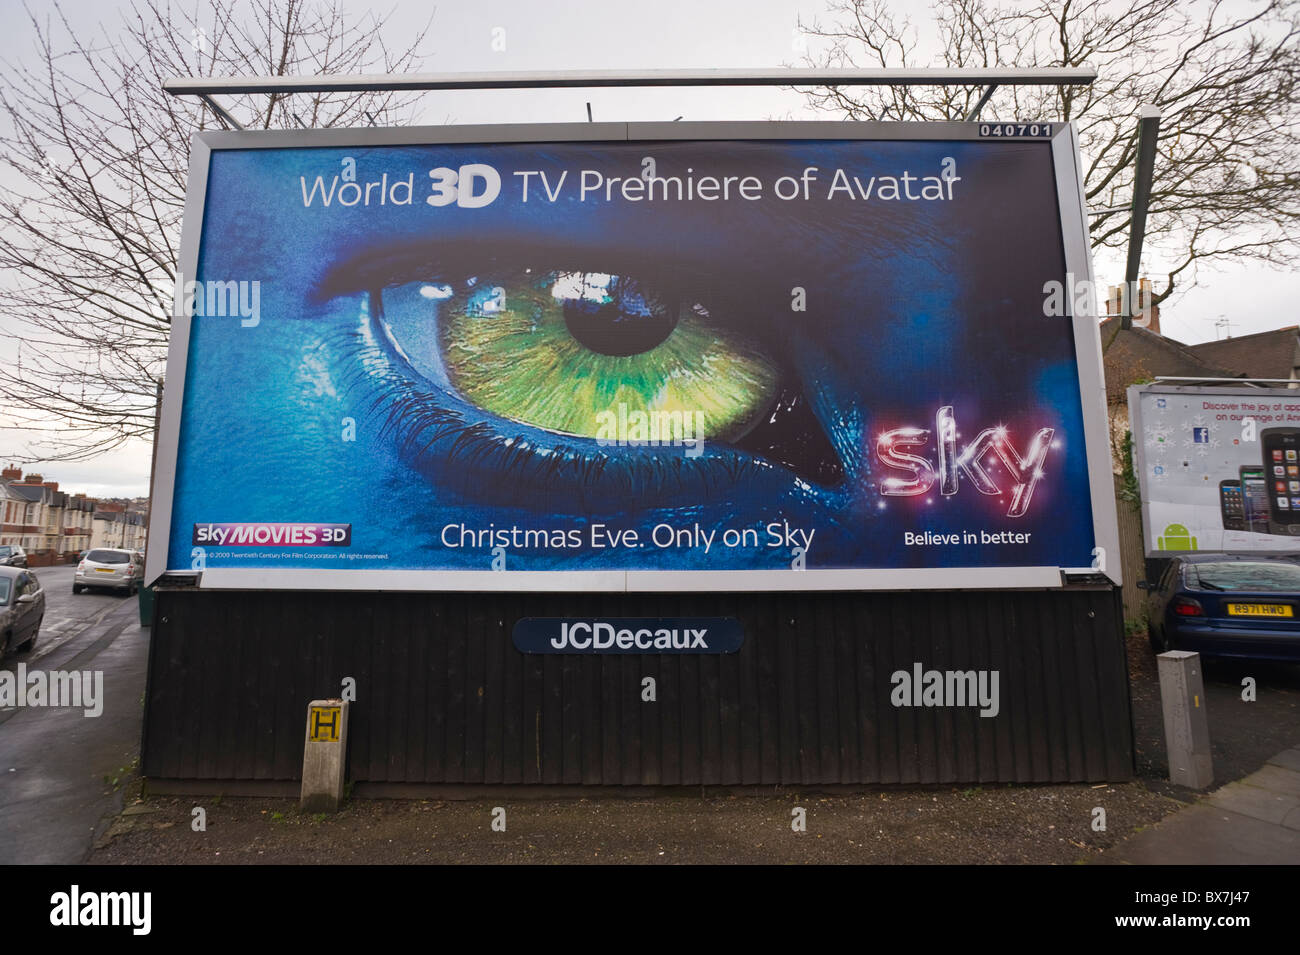 JCDecaux billboard site featuring advertising poster for SKY Movies